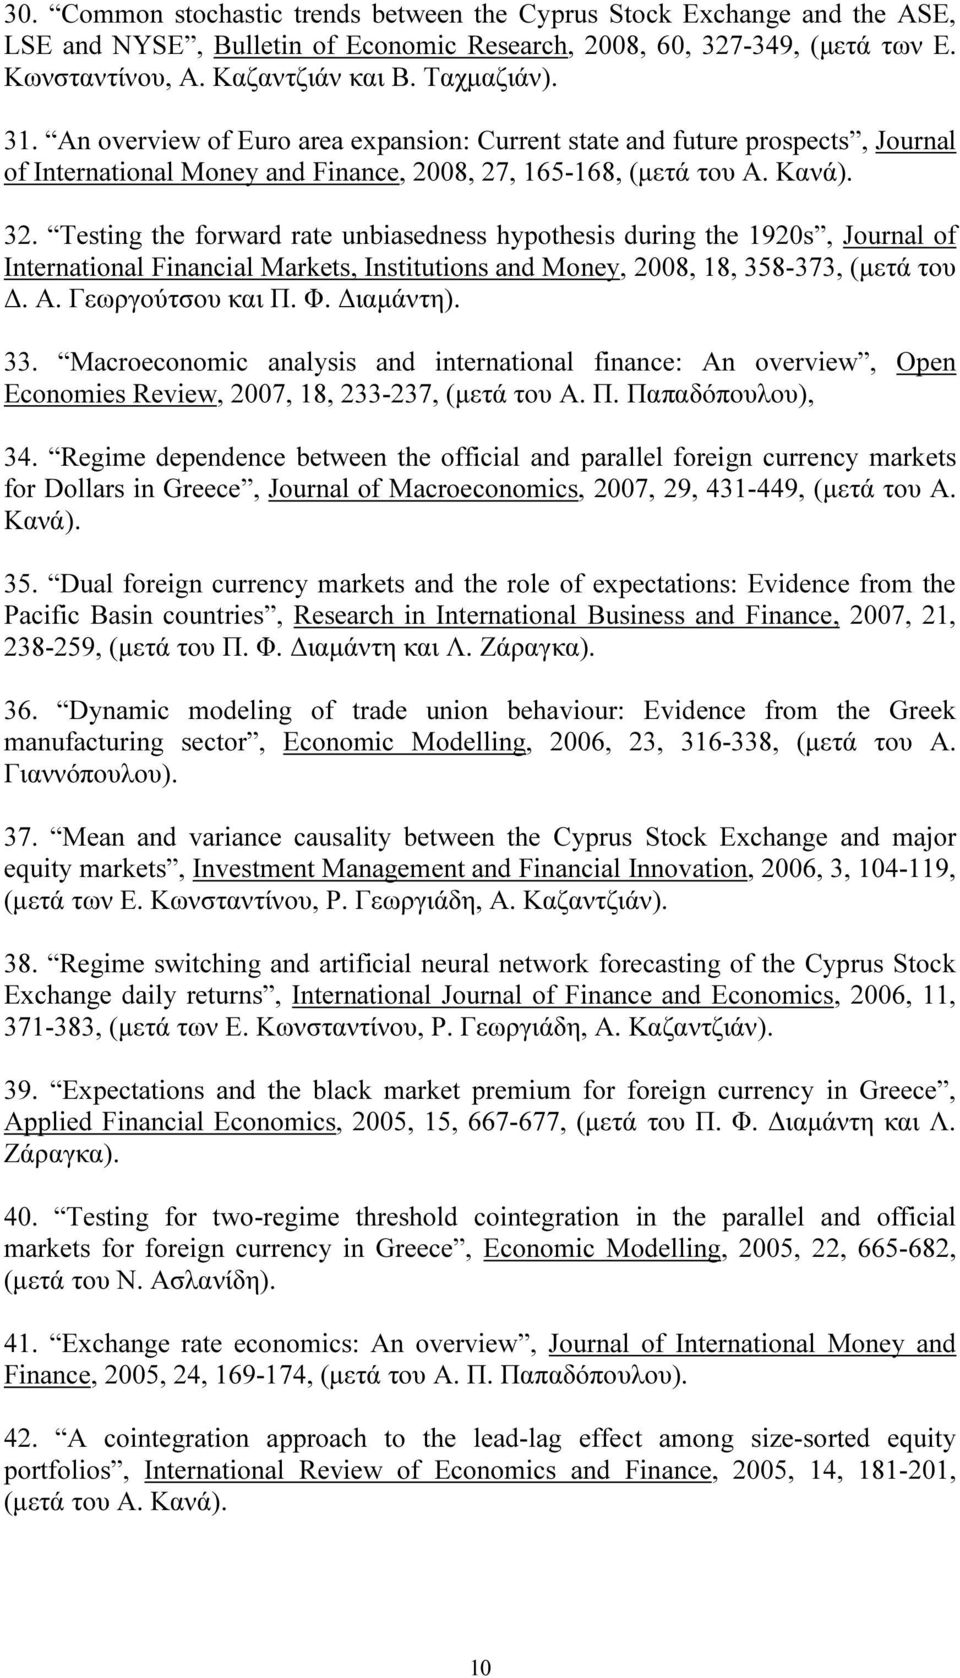 Testing the forward rate unbiasedness hypothesis during the 1920s, Journal of International Financial Markets, Institutions and Money, 2008, 18, 358-373, (μετά του Δ. Α. Γεωργούτσου και Π. Φ.